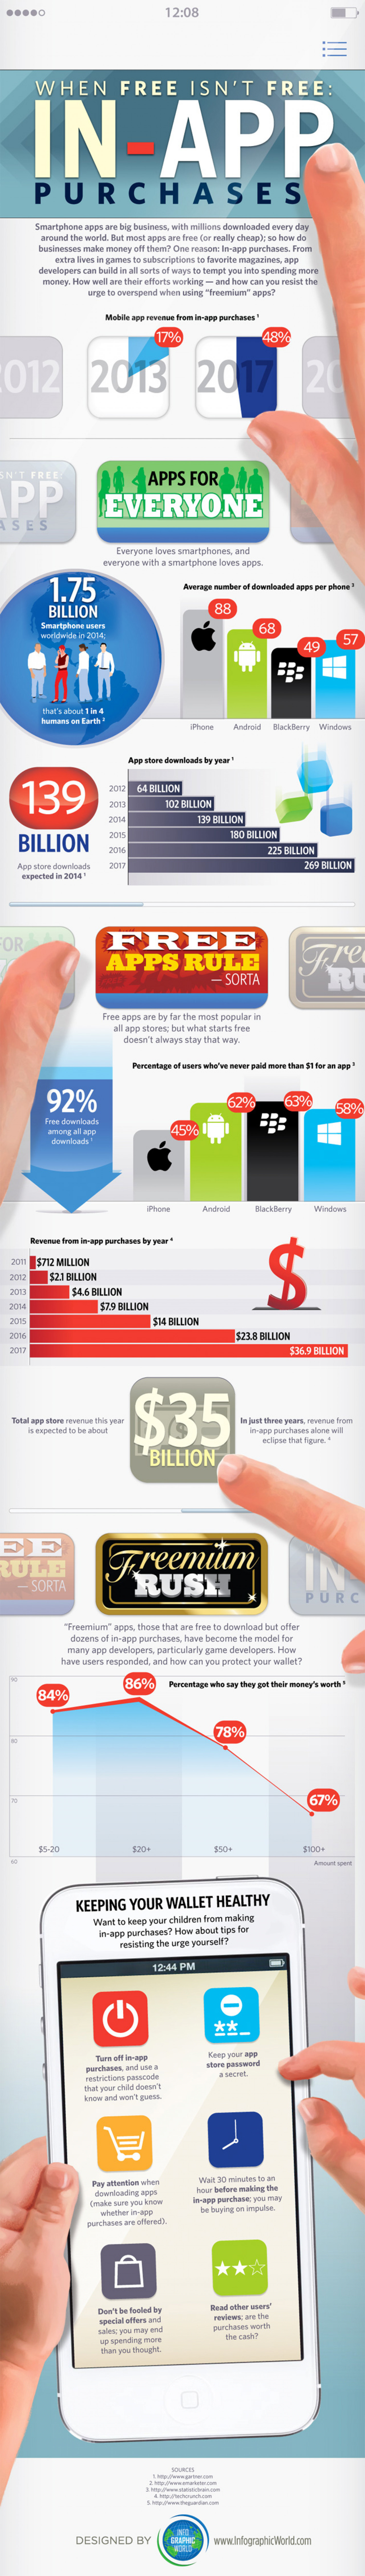 When Free Isn't Free: In-App Purchases Infographic